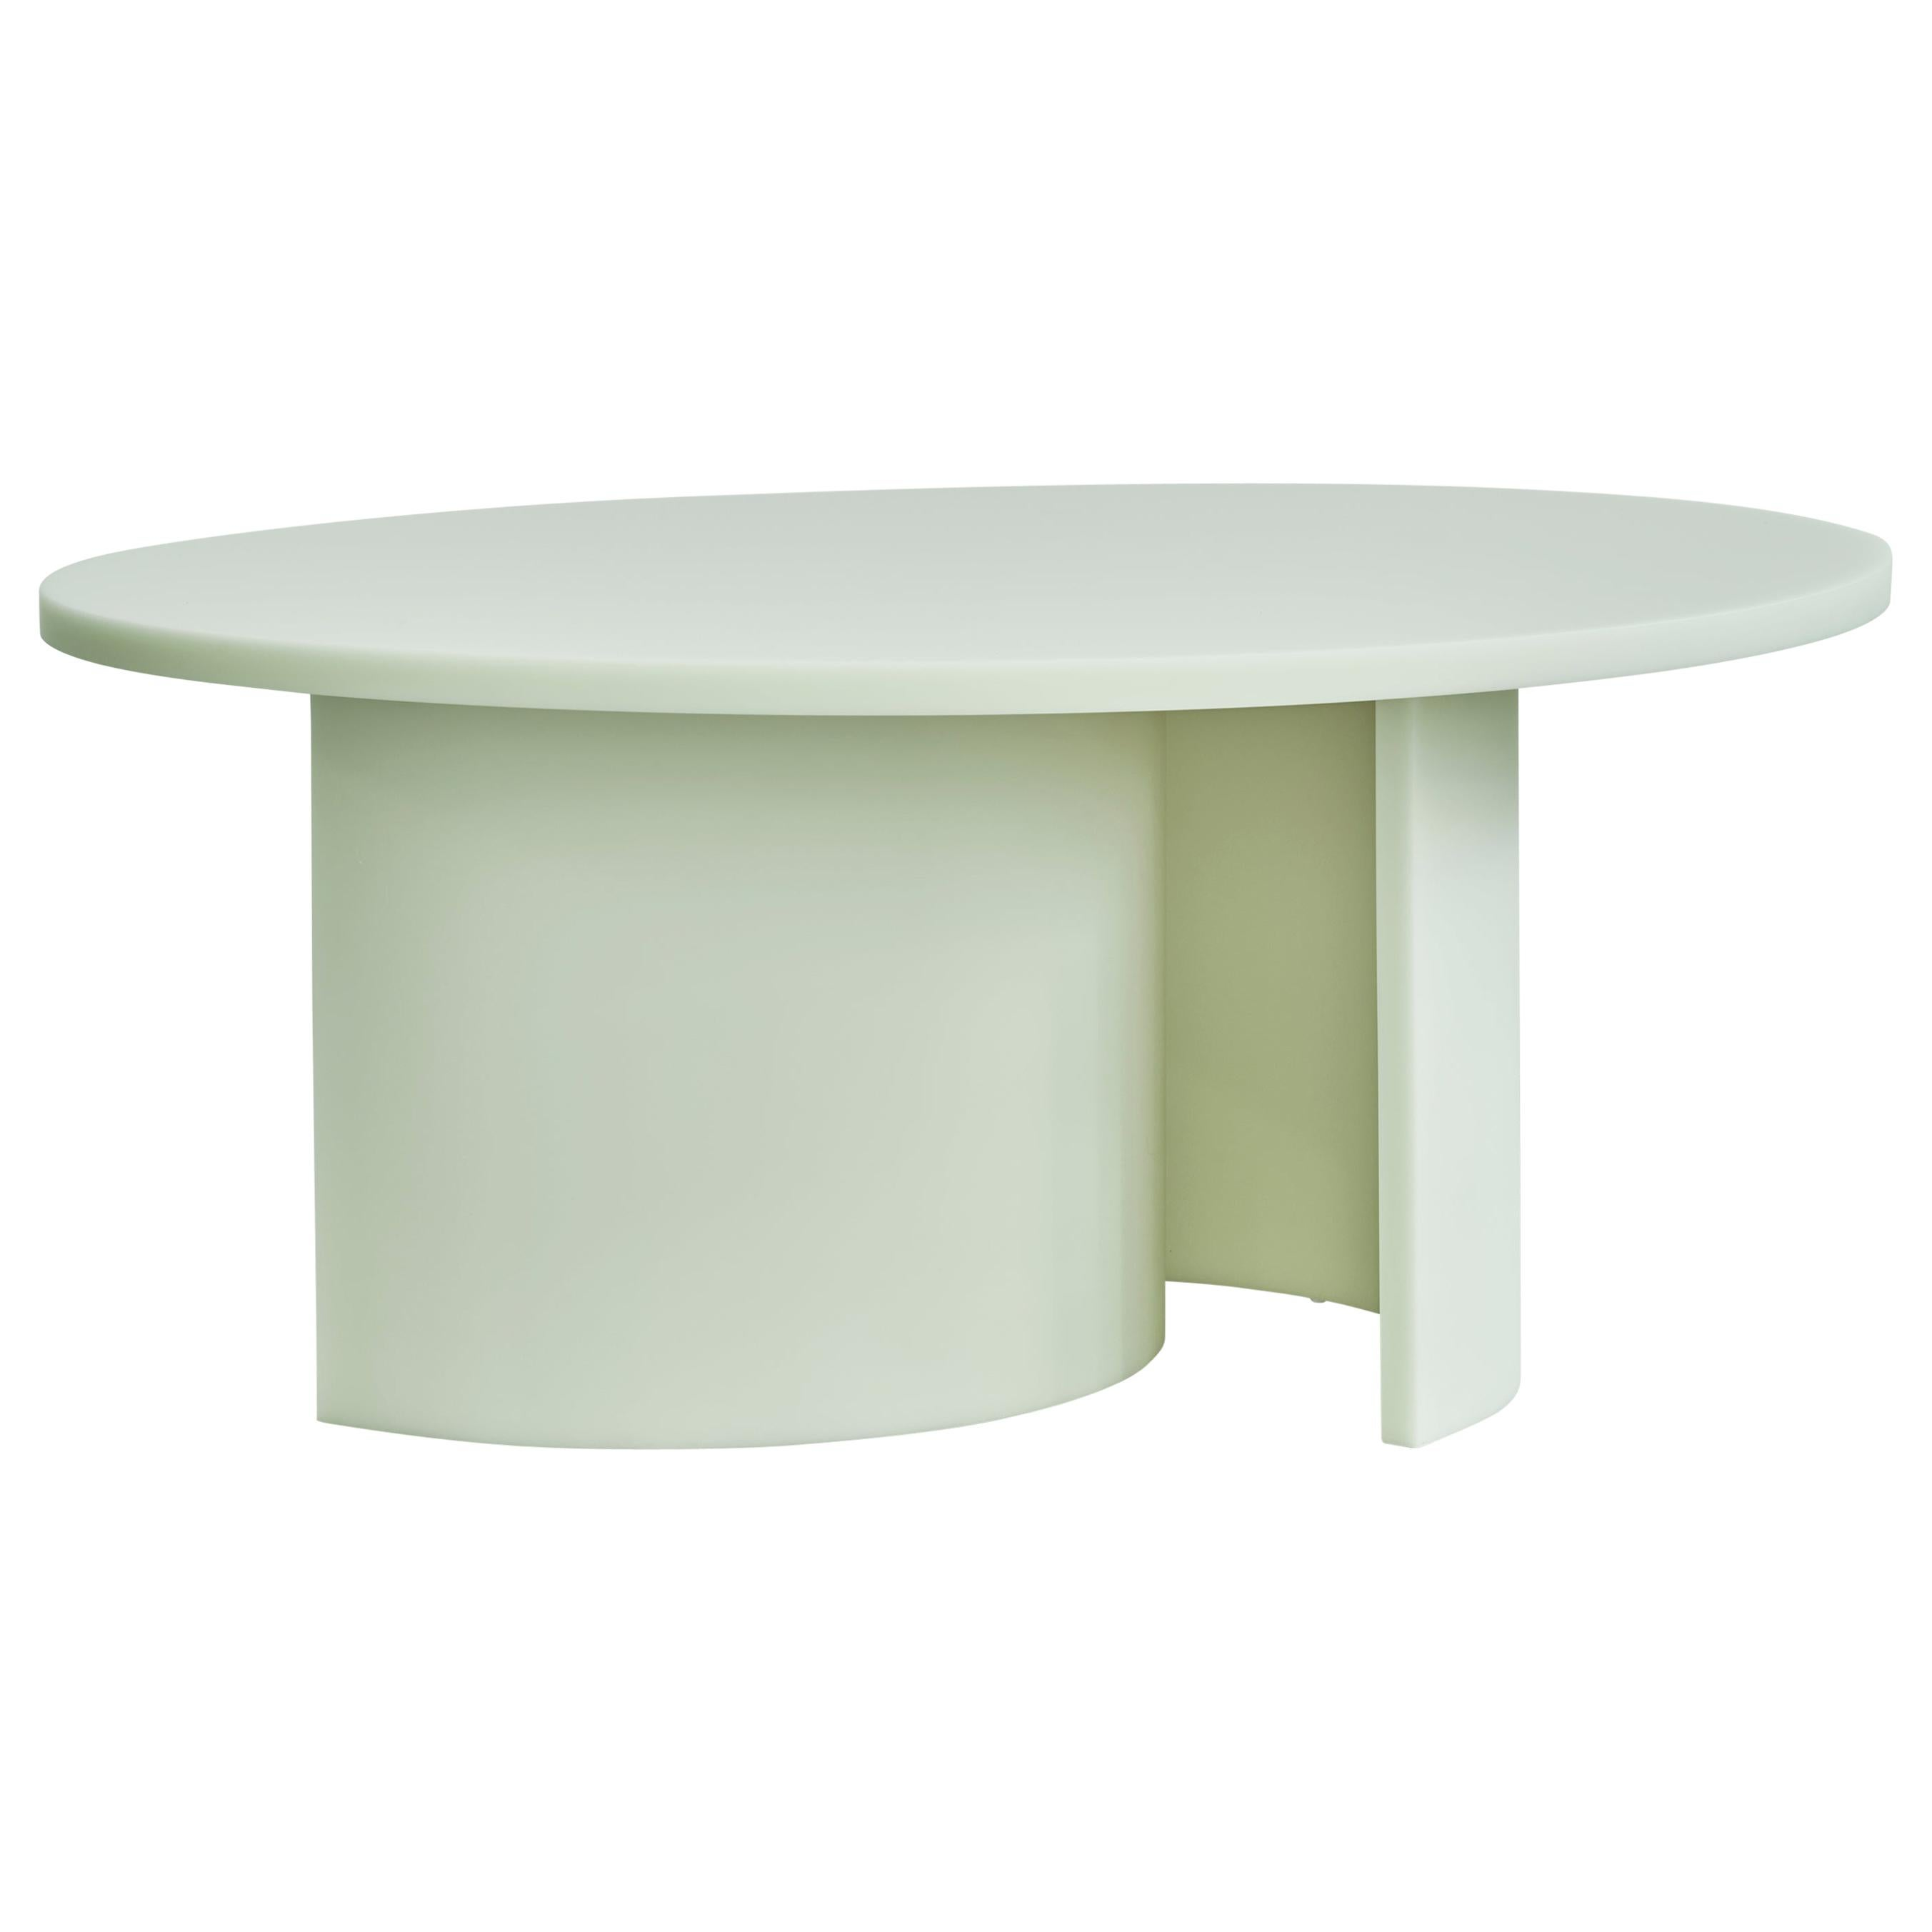 Contemporary Round Dining Table by Sabine Marcelis, Matte Resin, Mint